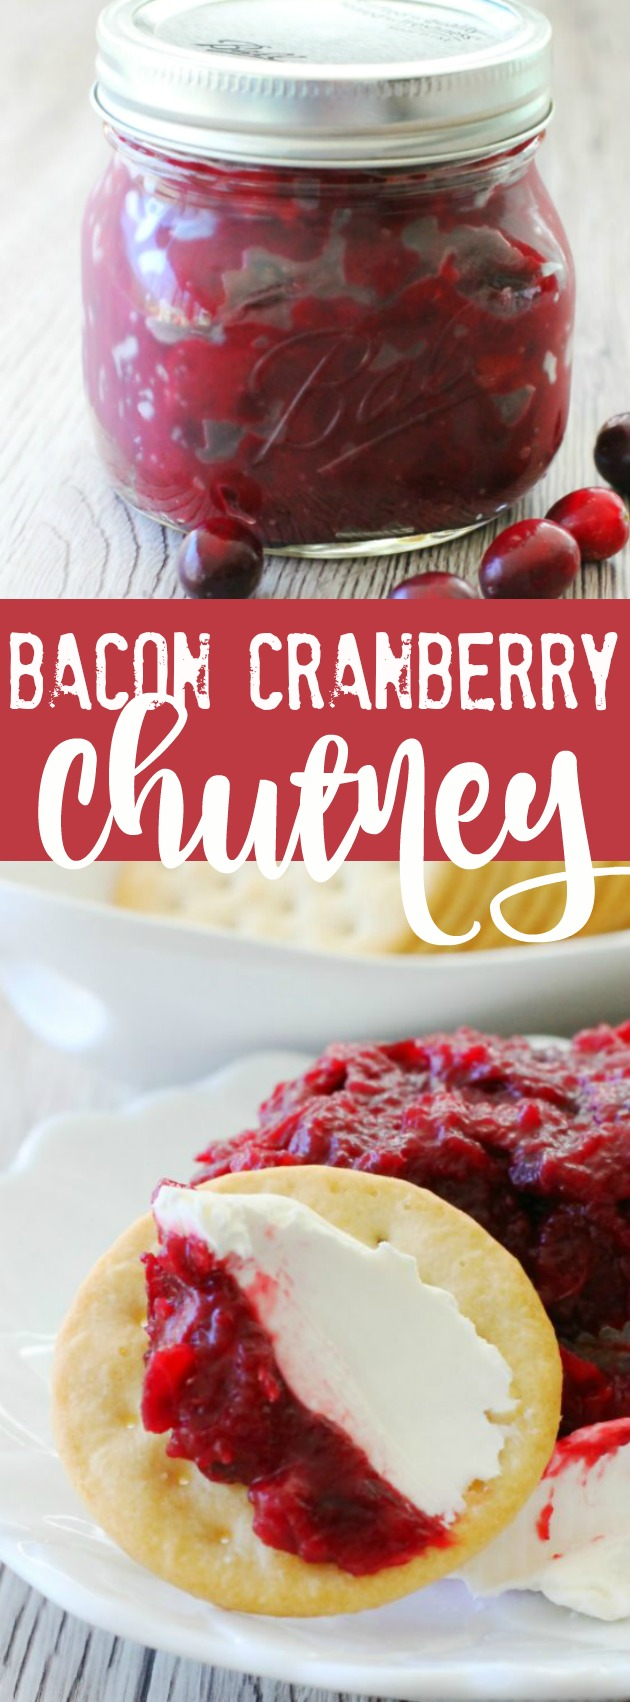 Bacon Cranberry Chutney